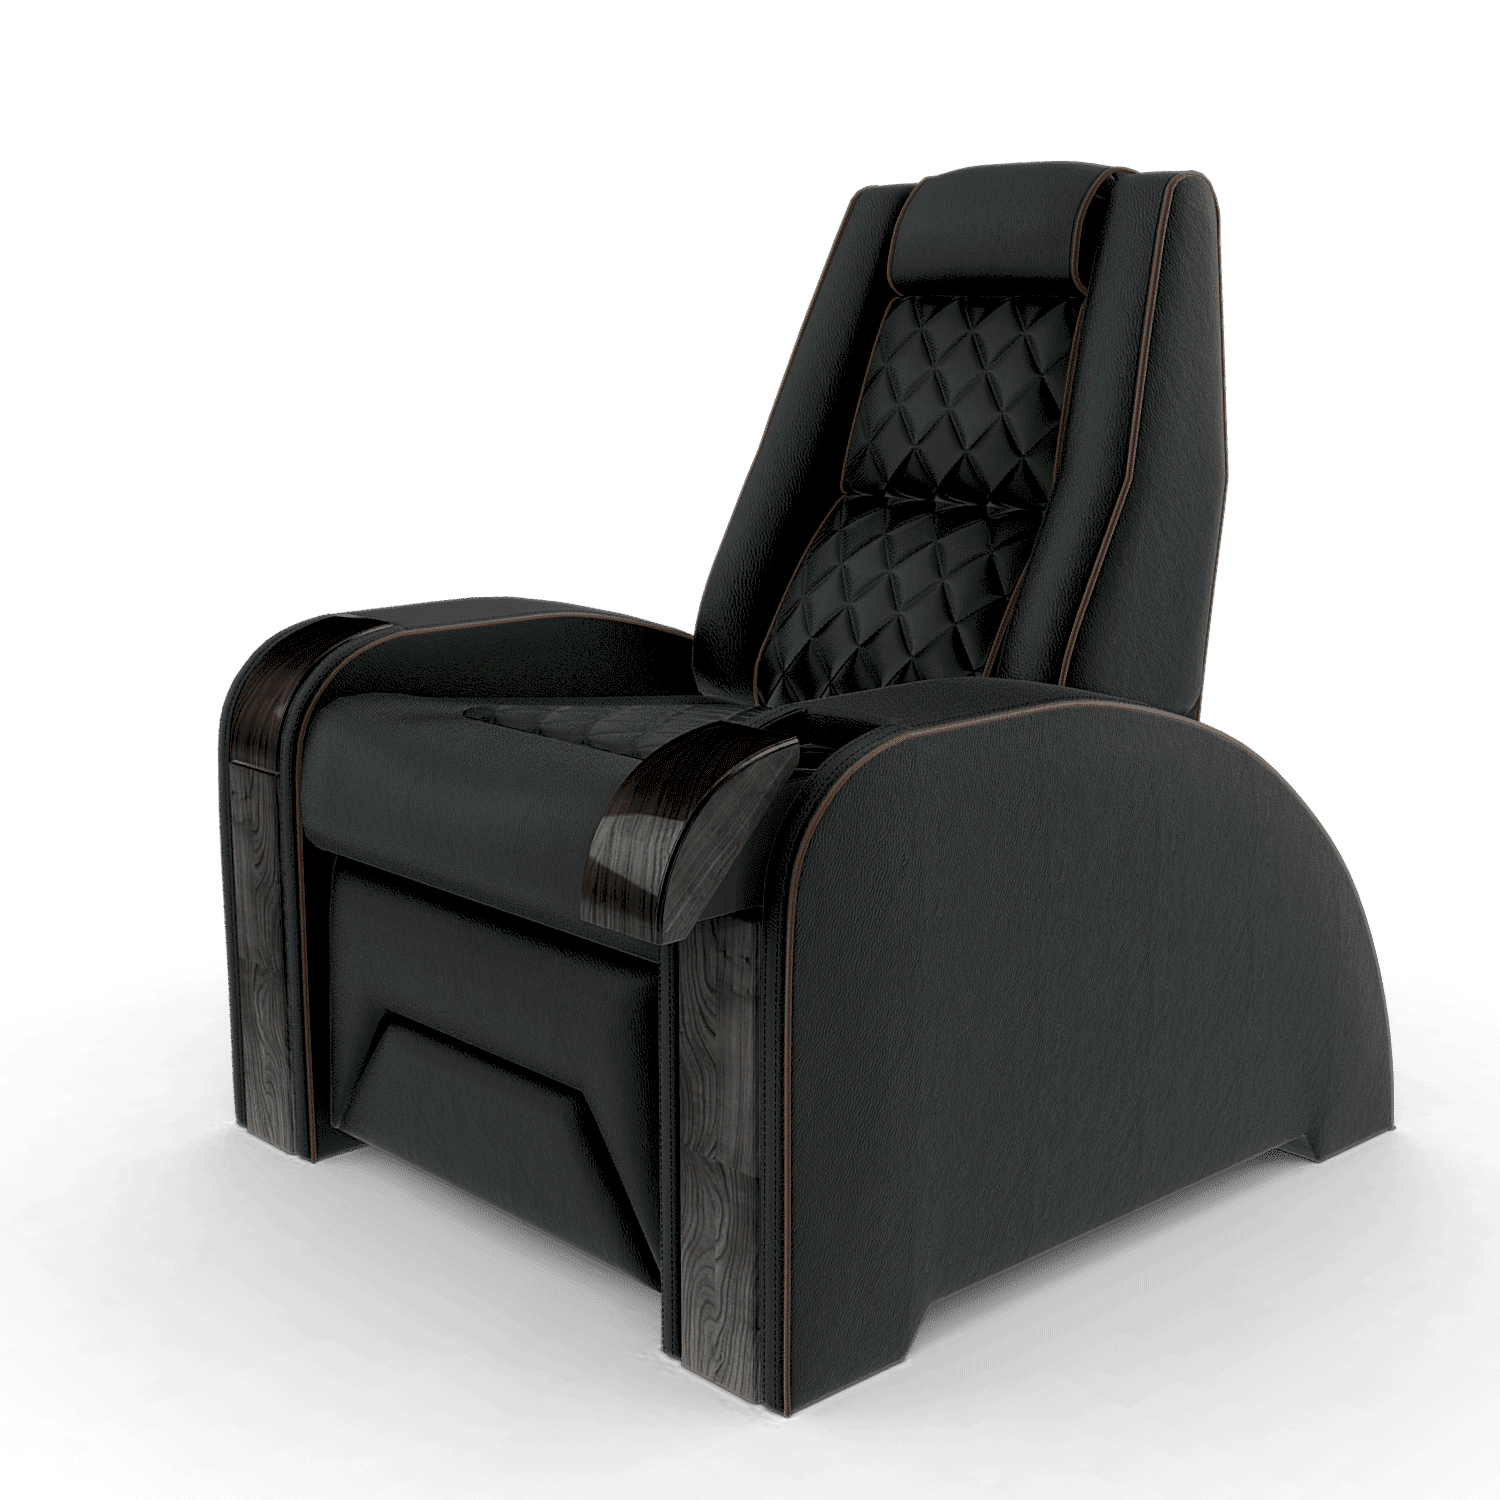 f1_black_home_theater_seating (1)